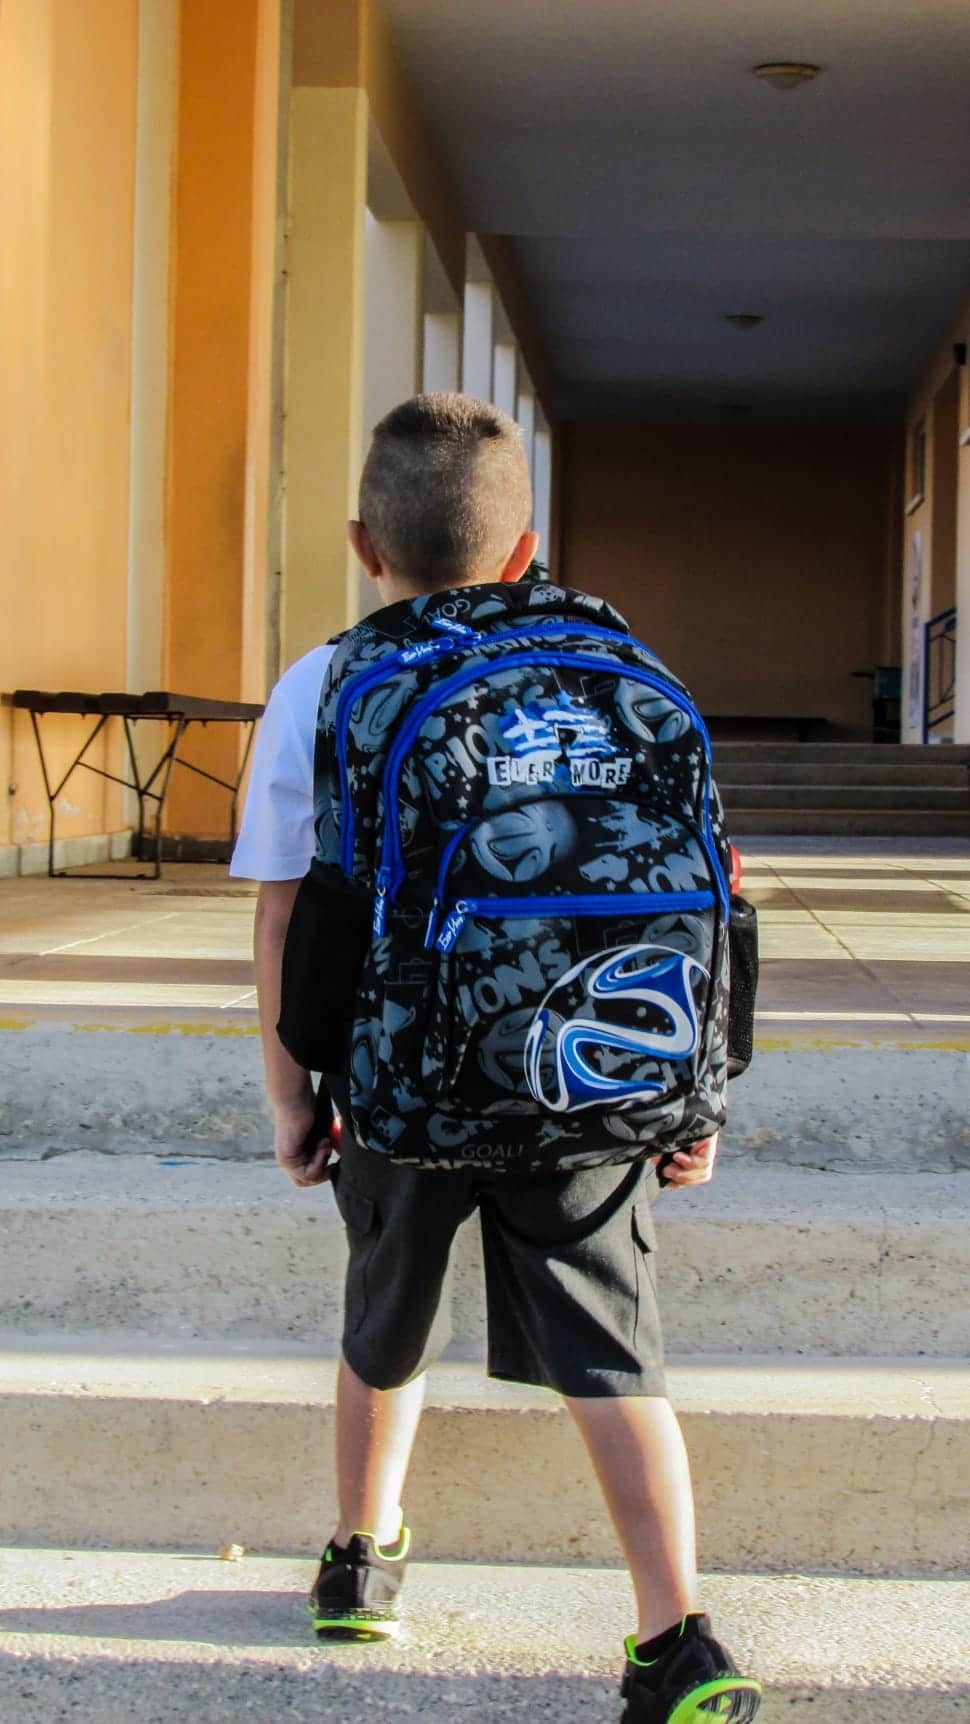 Kid with big backpack